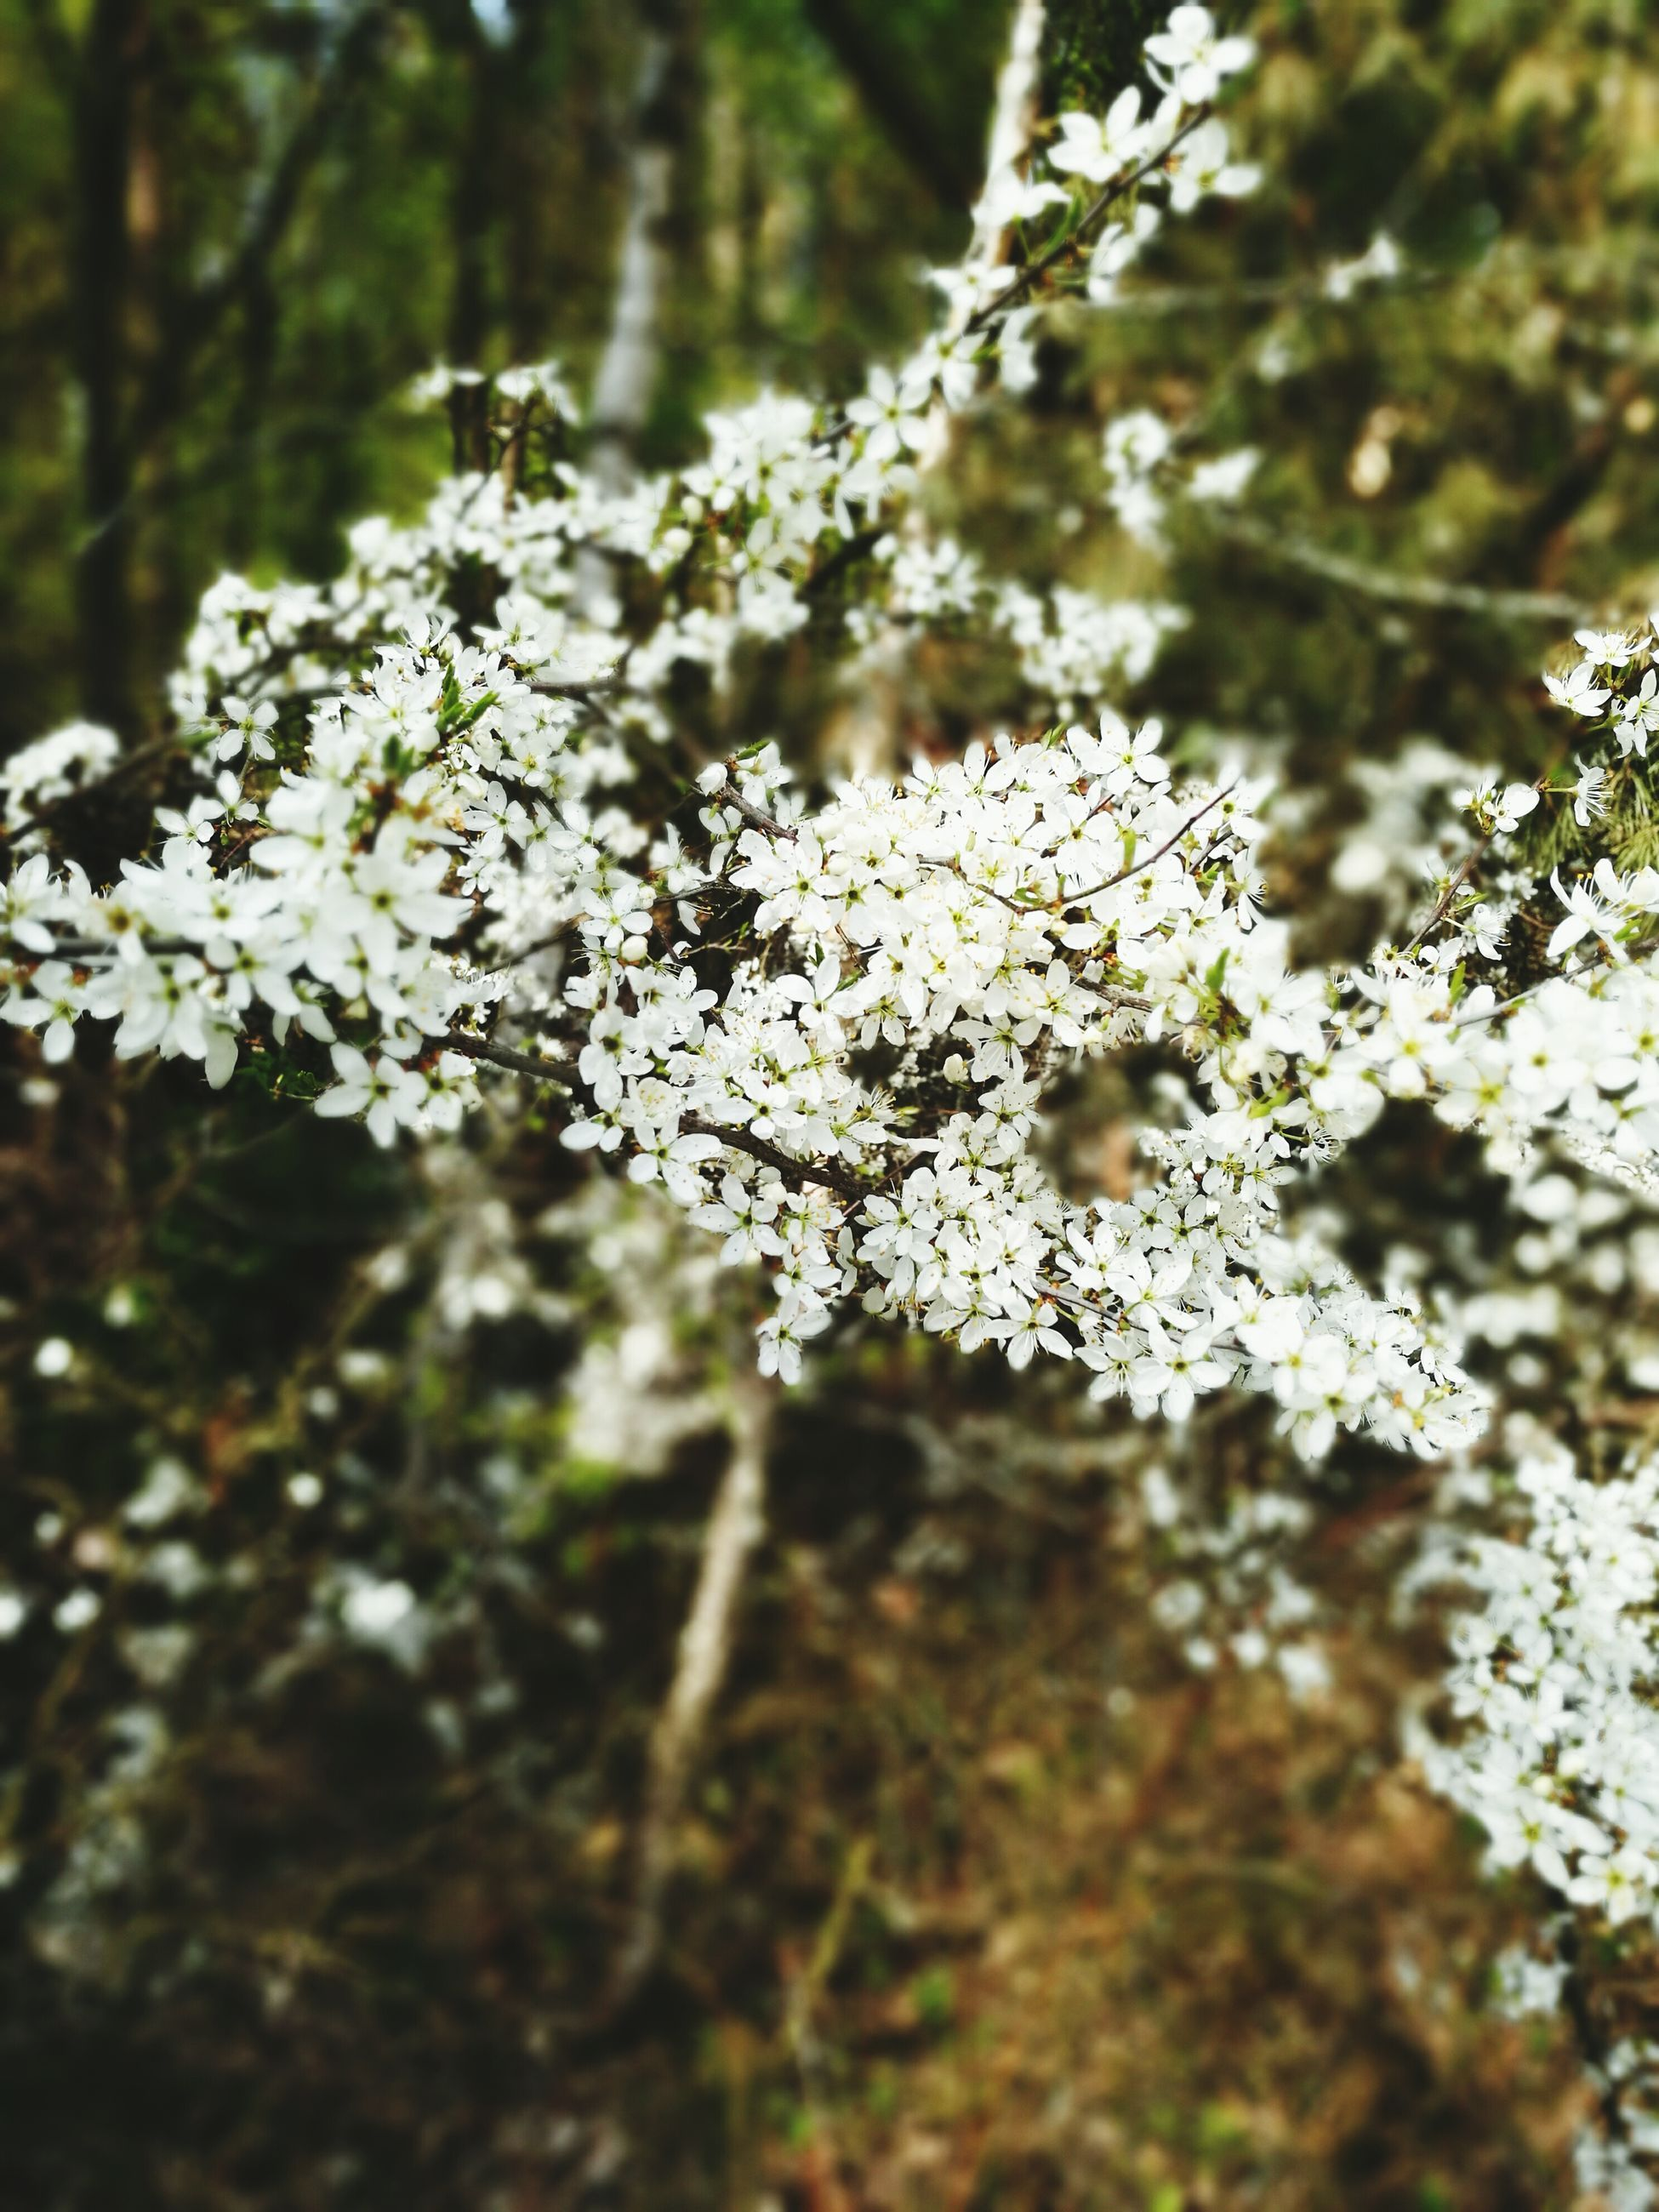 flower, white color, growth, tree, freshness, nature, beauty in nature, focus on foreground, fragility, close-up, branch, white, blossom, blooming, petal, selective focus, in bloom, plant, outdoors, day